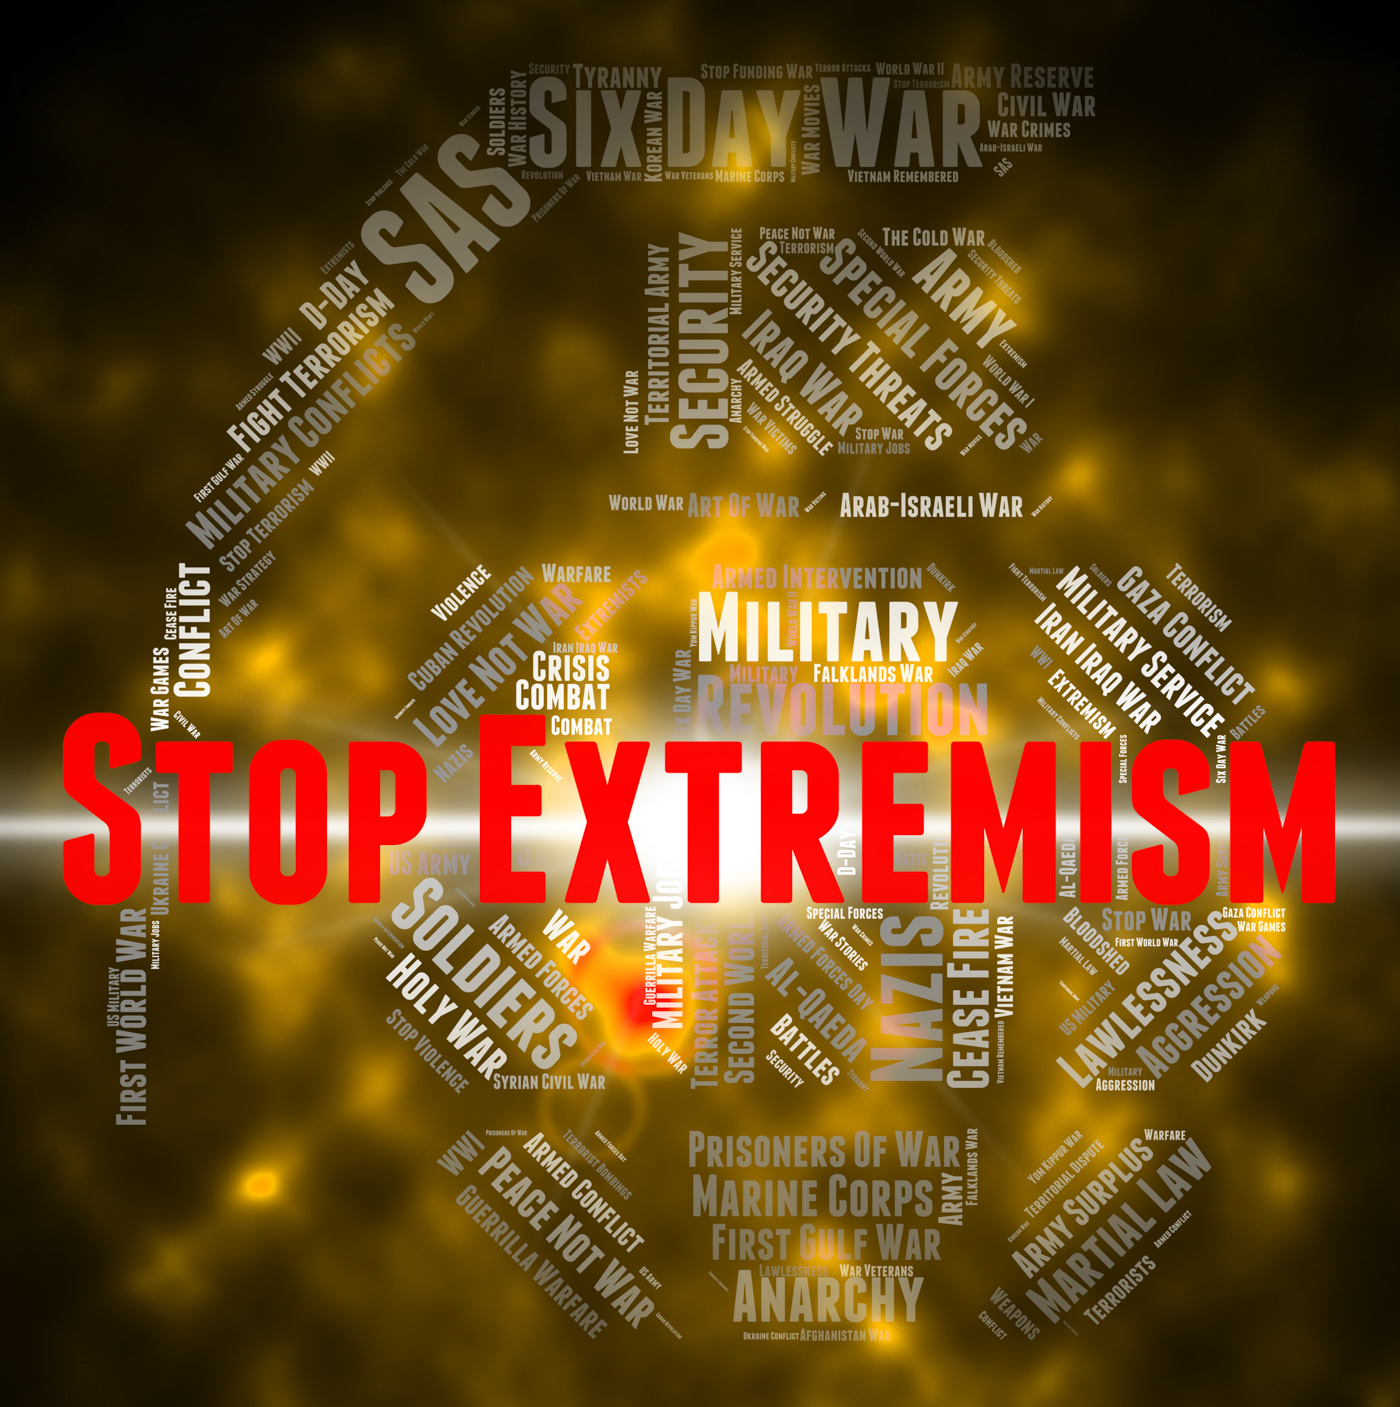 Stop extremism represents control bigotry and warning photo